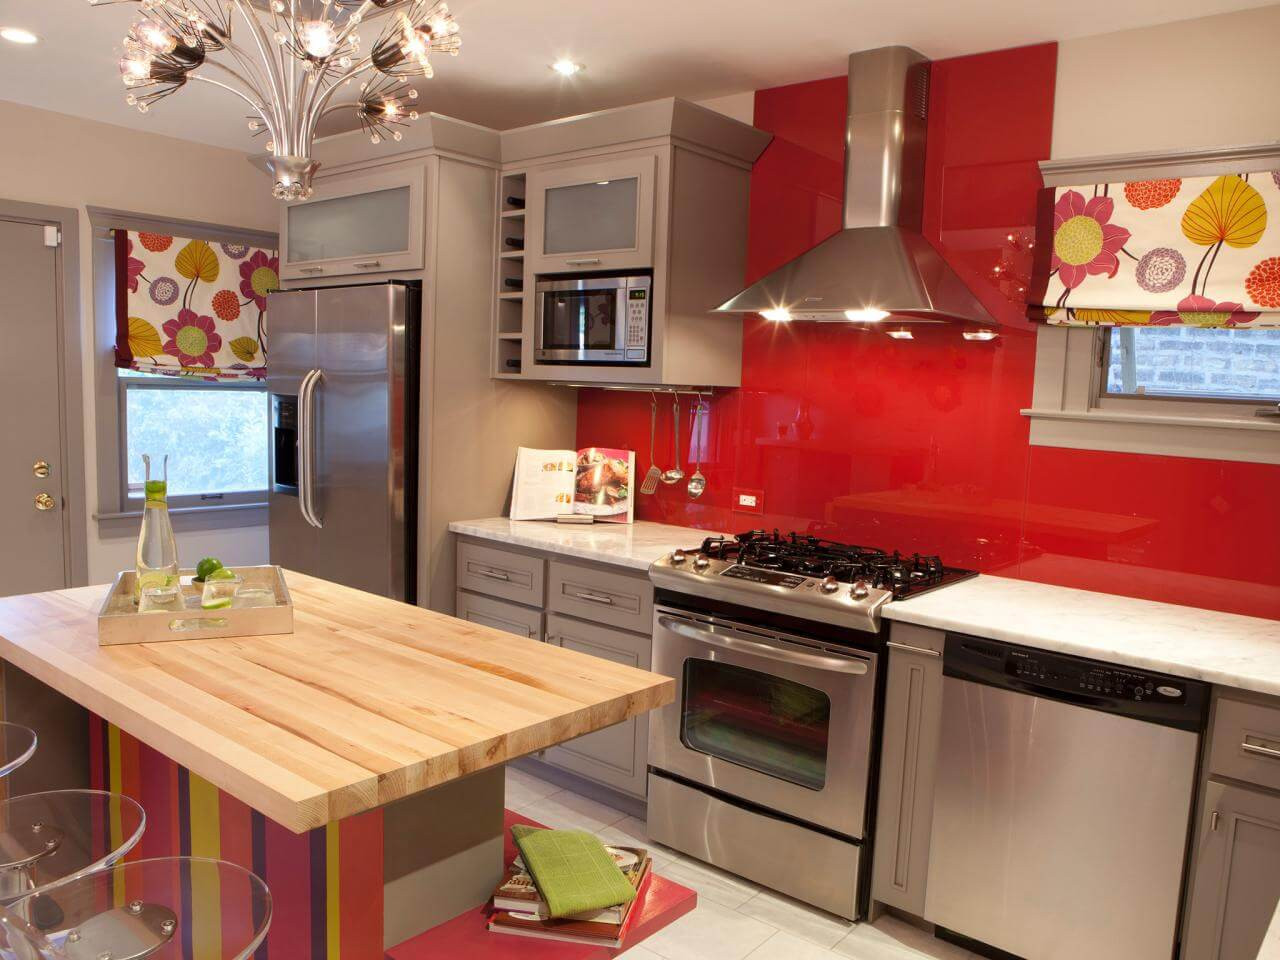 Inexpensive Kitchen Counter  Inexpensive Kitchen Remodel for a Fresh Facelift without